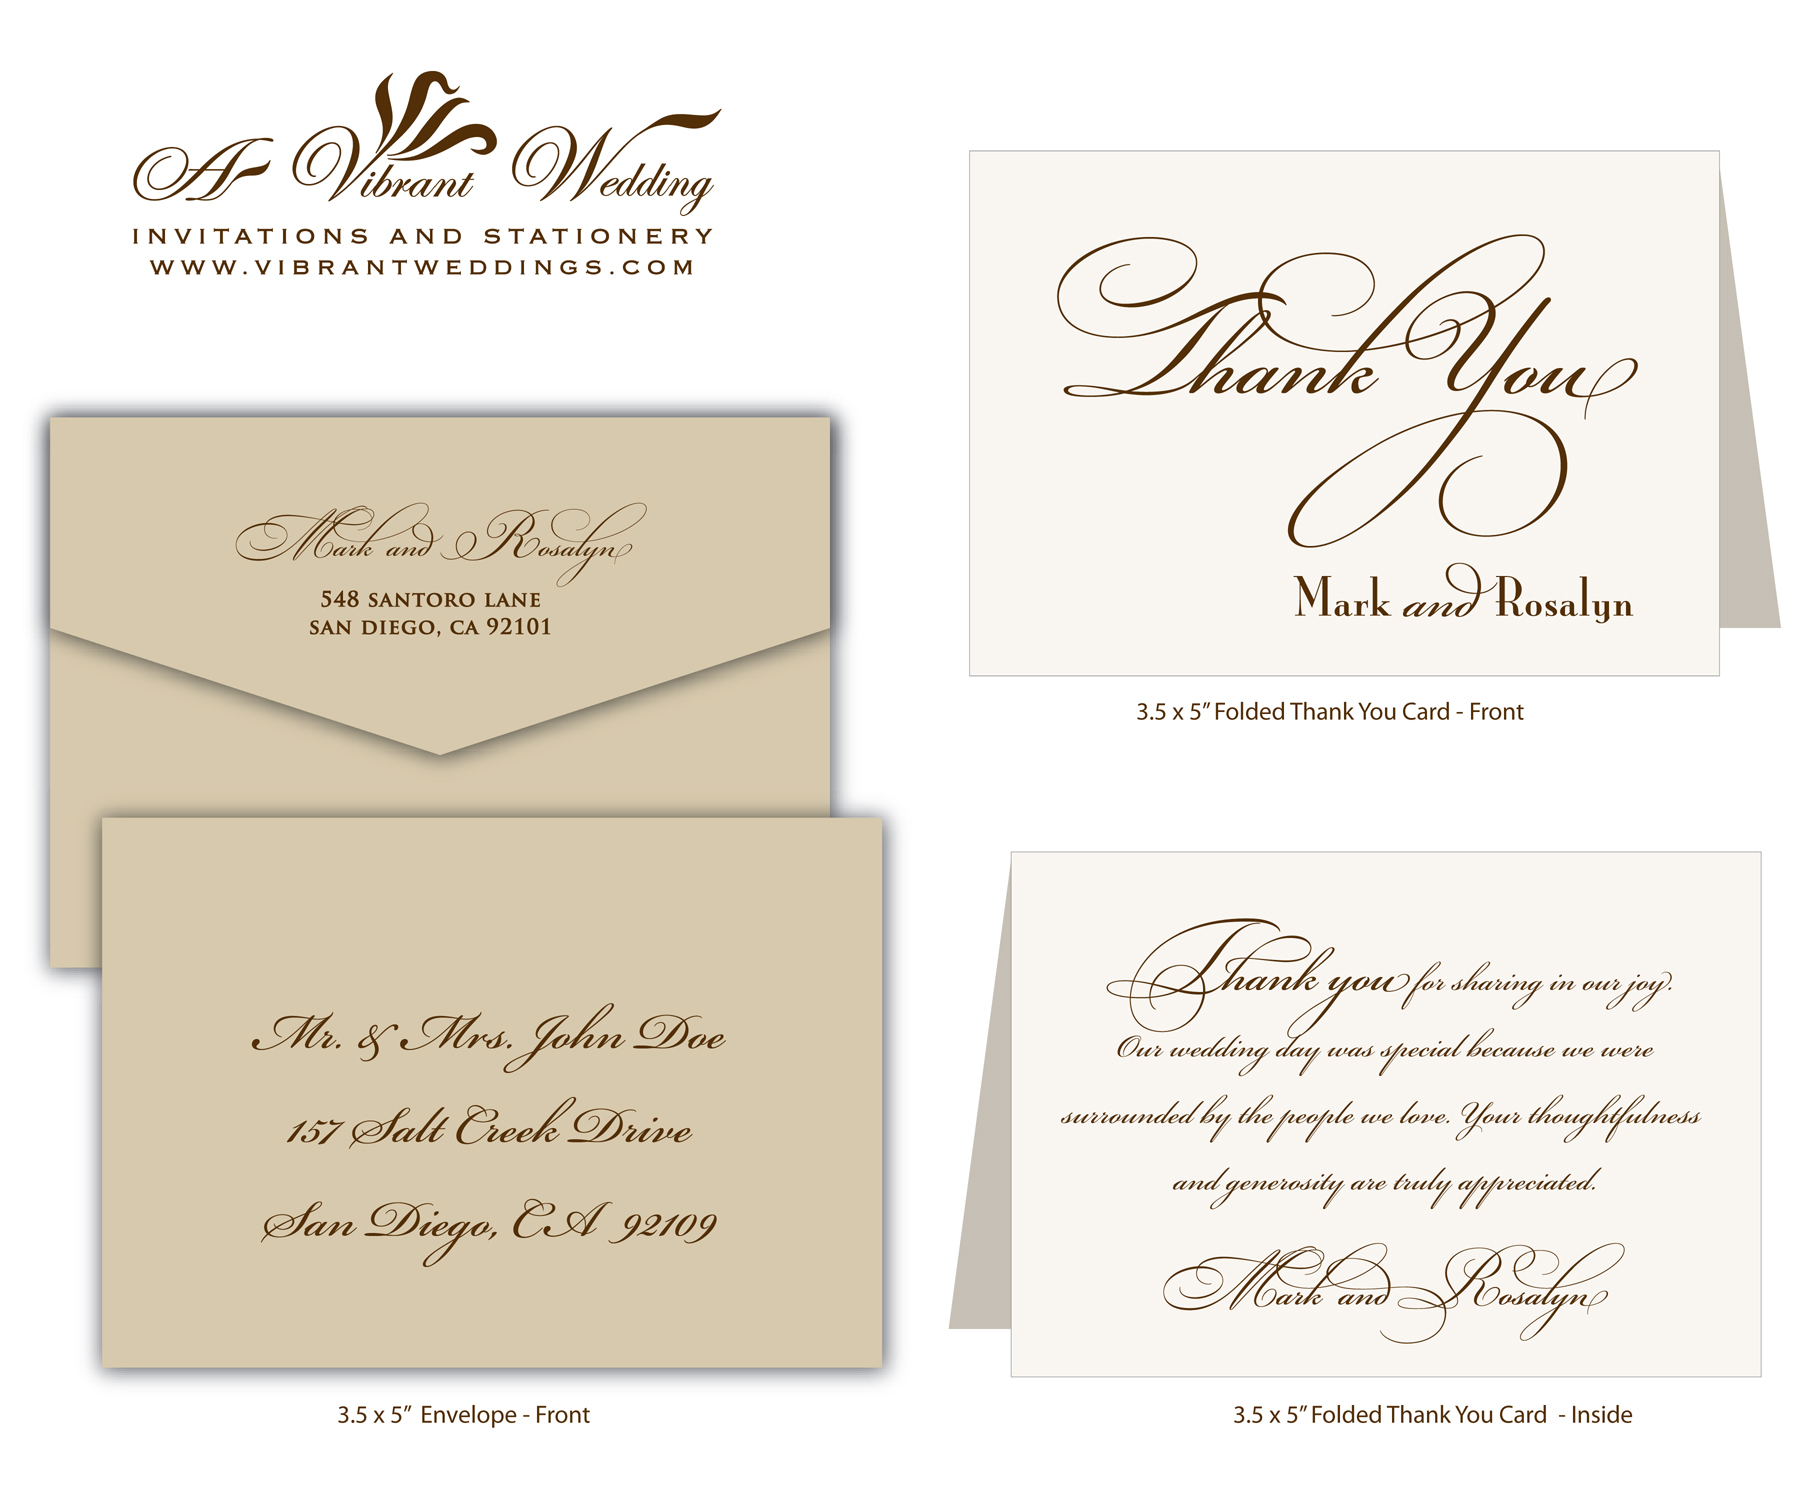 Writing Wedding Gift Thank You Cards : ... over 250 cards stocks colors and envelopes. Custom Thank you Cards